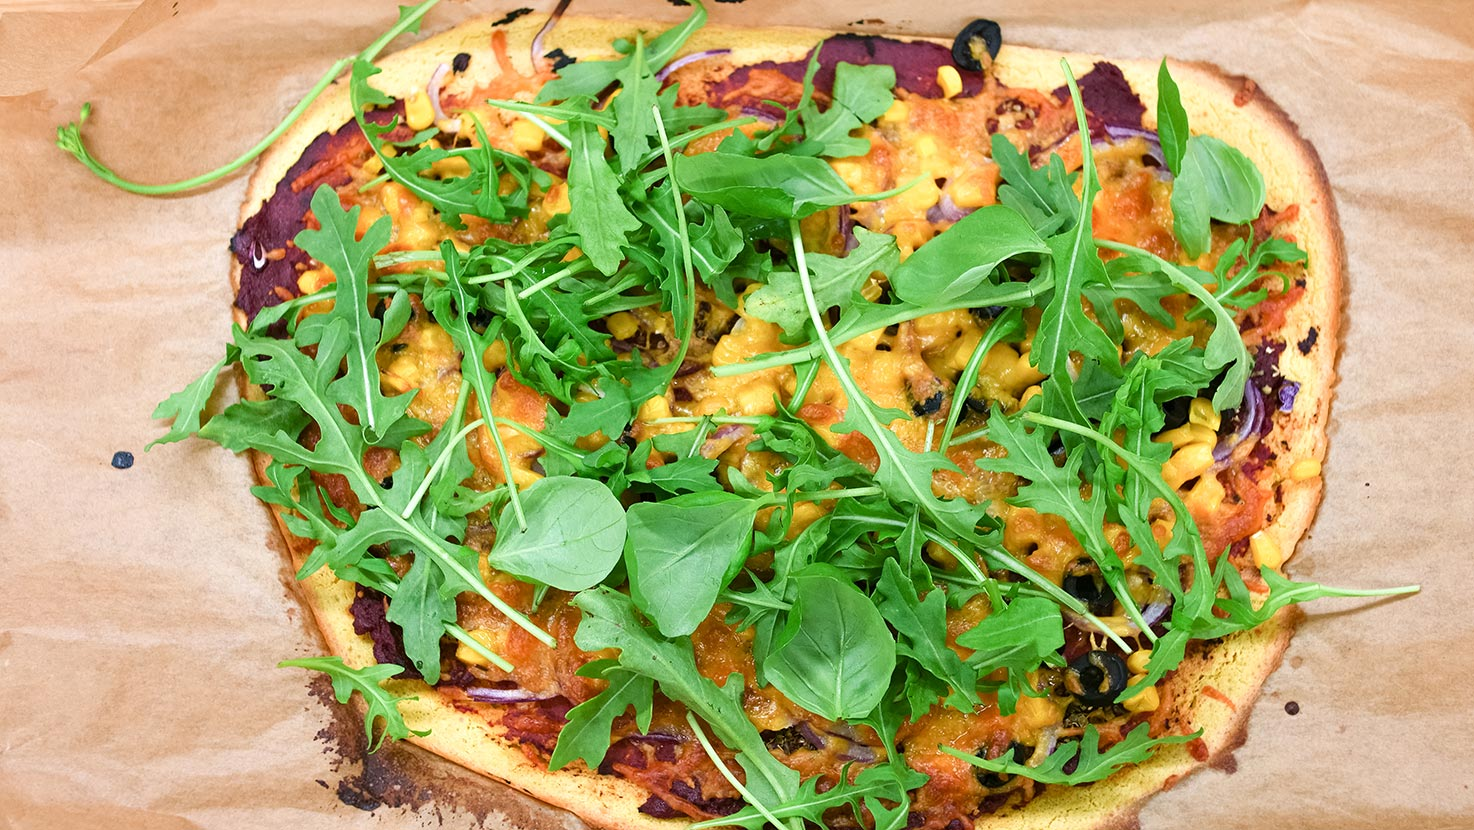 The garnished pizza with arugula/rocket is ready on the parchment paper in a baking tray #oregano #garlic powder | hurrythefoodup.com